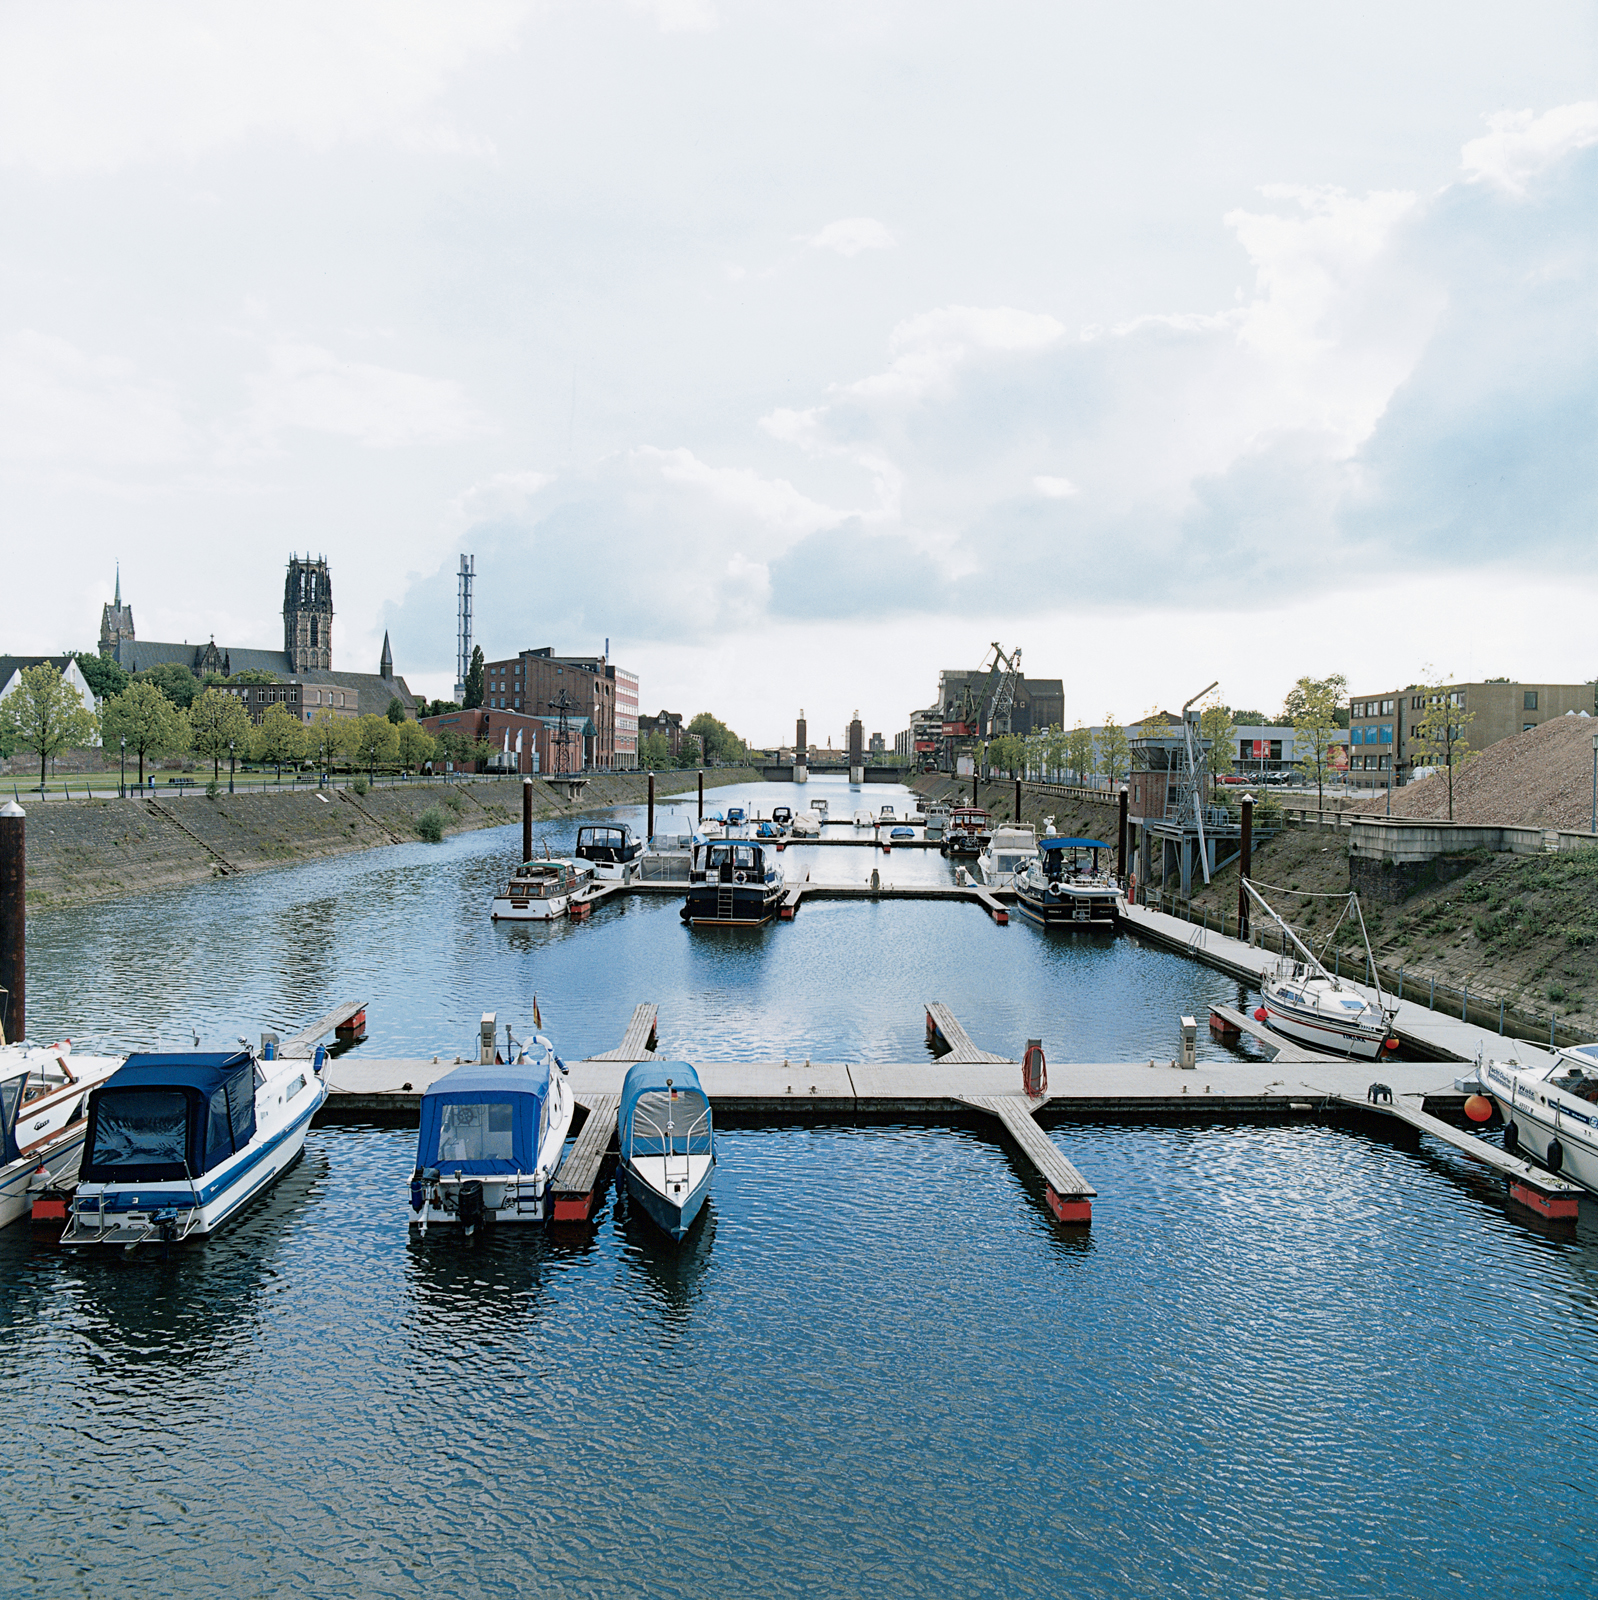 """""""We addressed the need to reconnect the inner city with the water's edge,"""" says Foster. Accordingly, the Steiger Schwanentor jetty was the first project completed. The pontoon-and-ram system provides mooring facilities for sightseeing boats."""